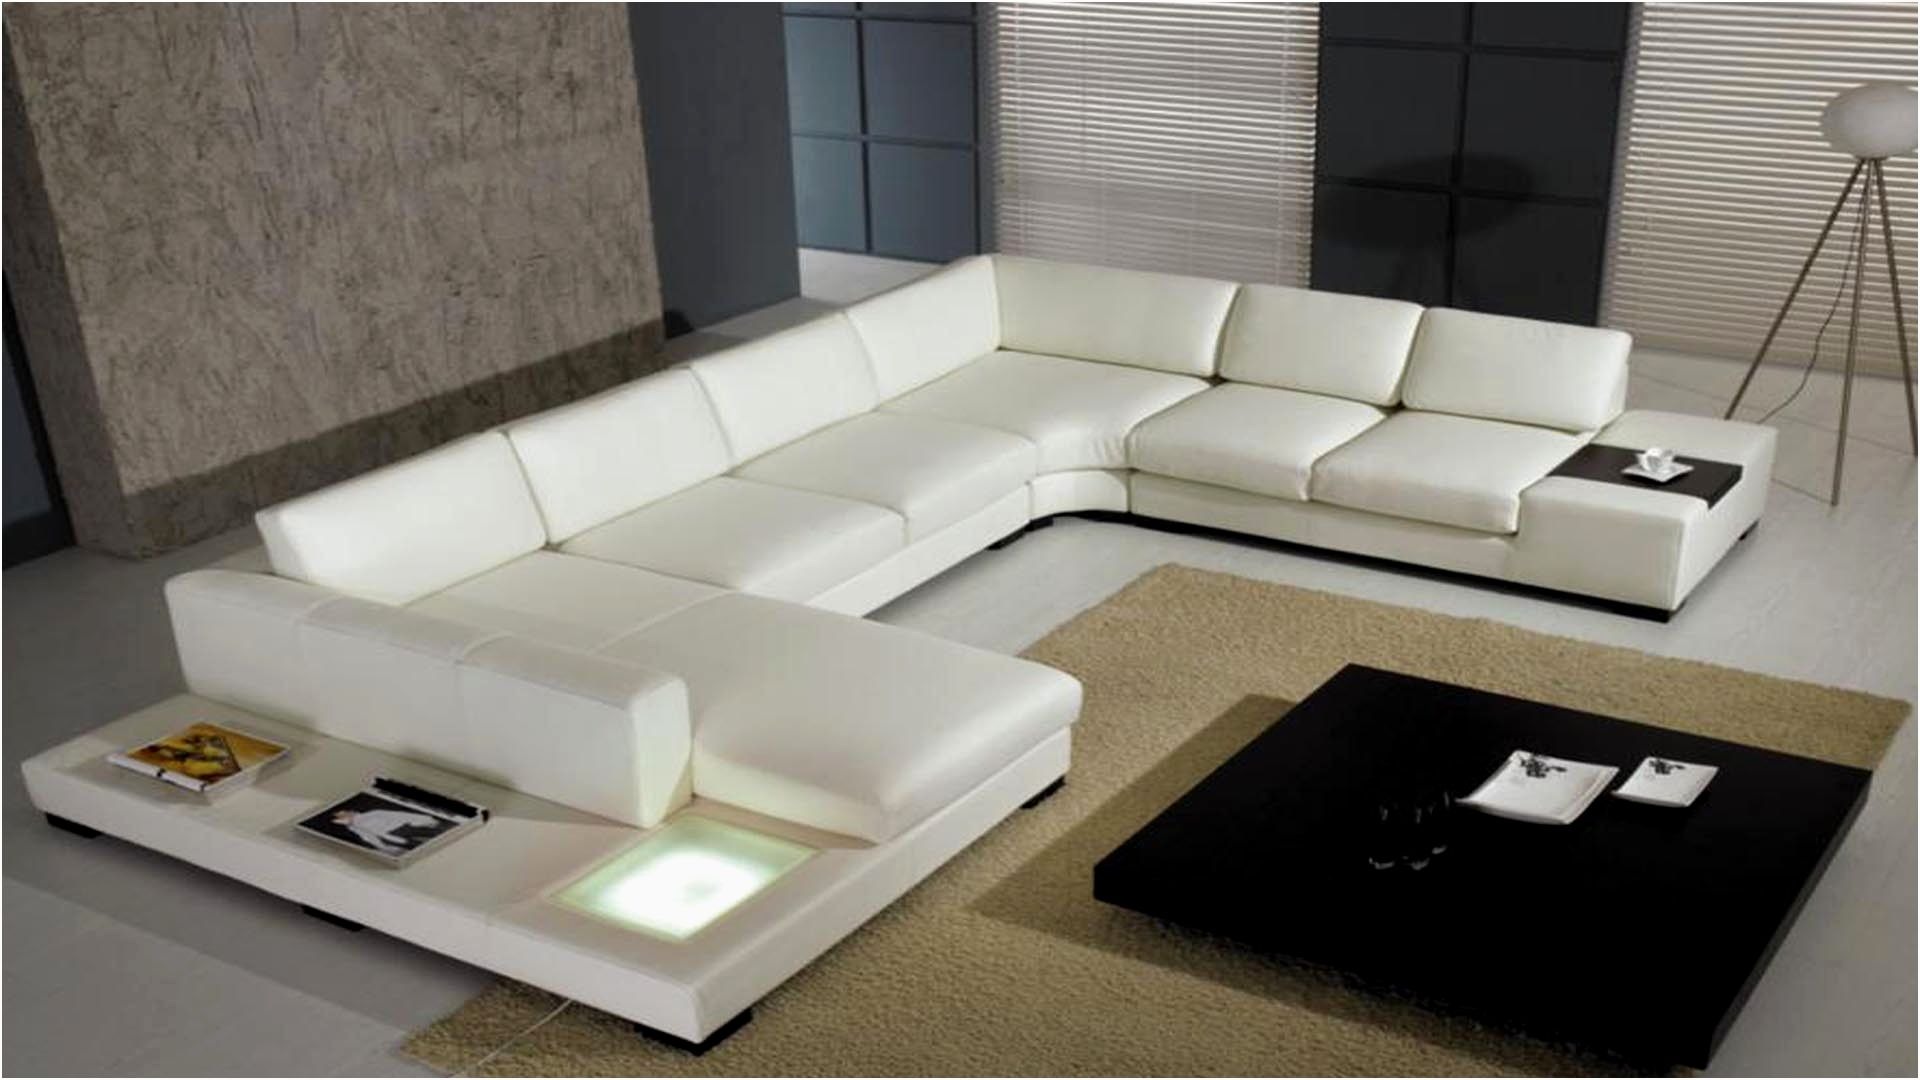 Designer Leather Sofas For Sale Unique Cheap Leather Sofas For Sale Gallery Modern Sofa